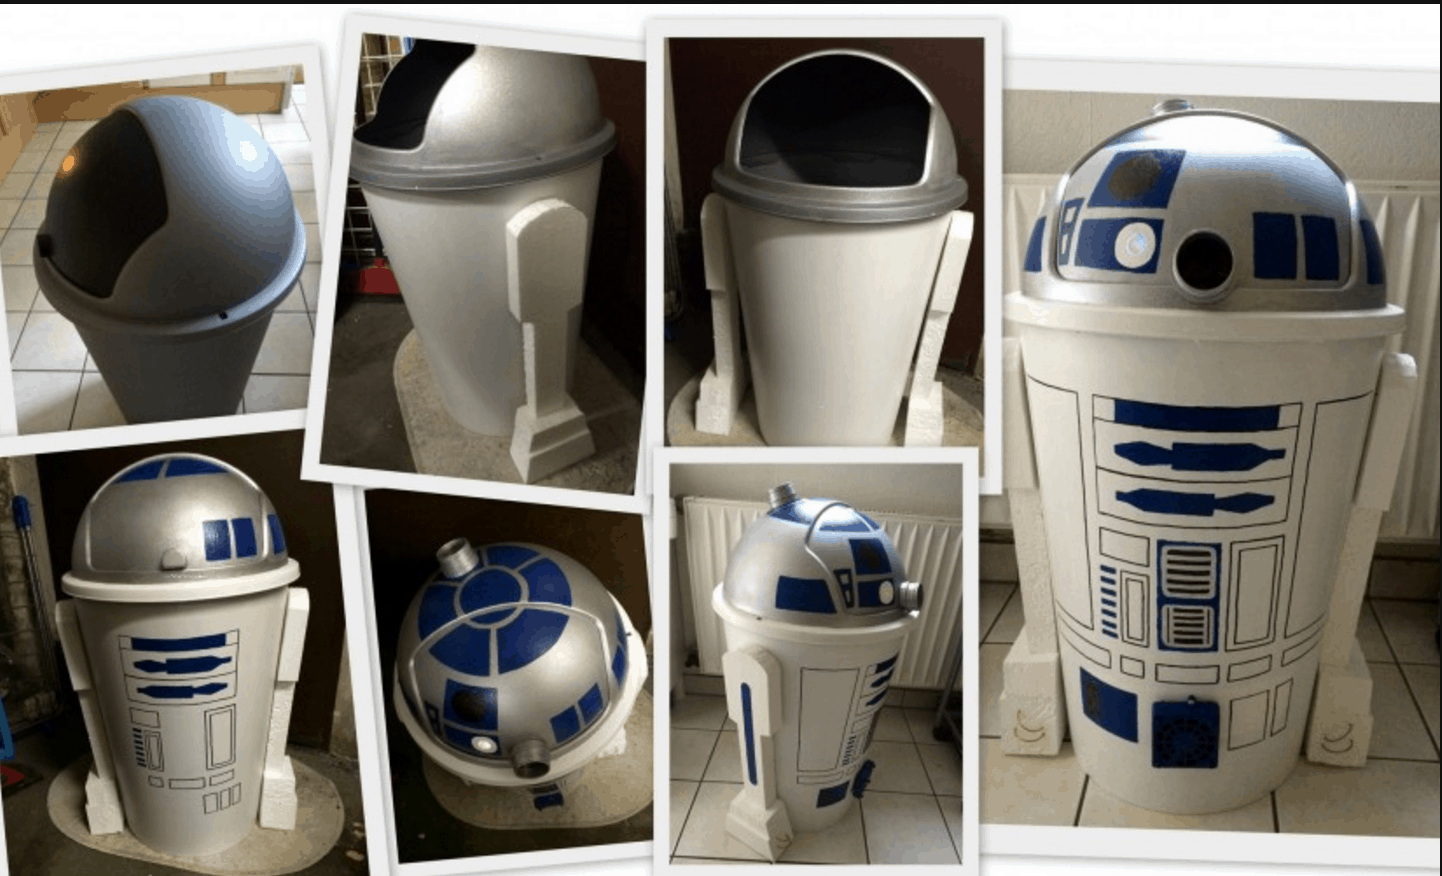 r2 d2 m lleimer selbst gemacht dravens tales from the crypt. Black Bedroom Furniture Sets. Home Design Ideas